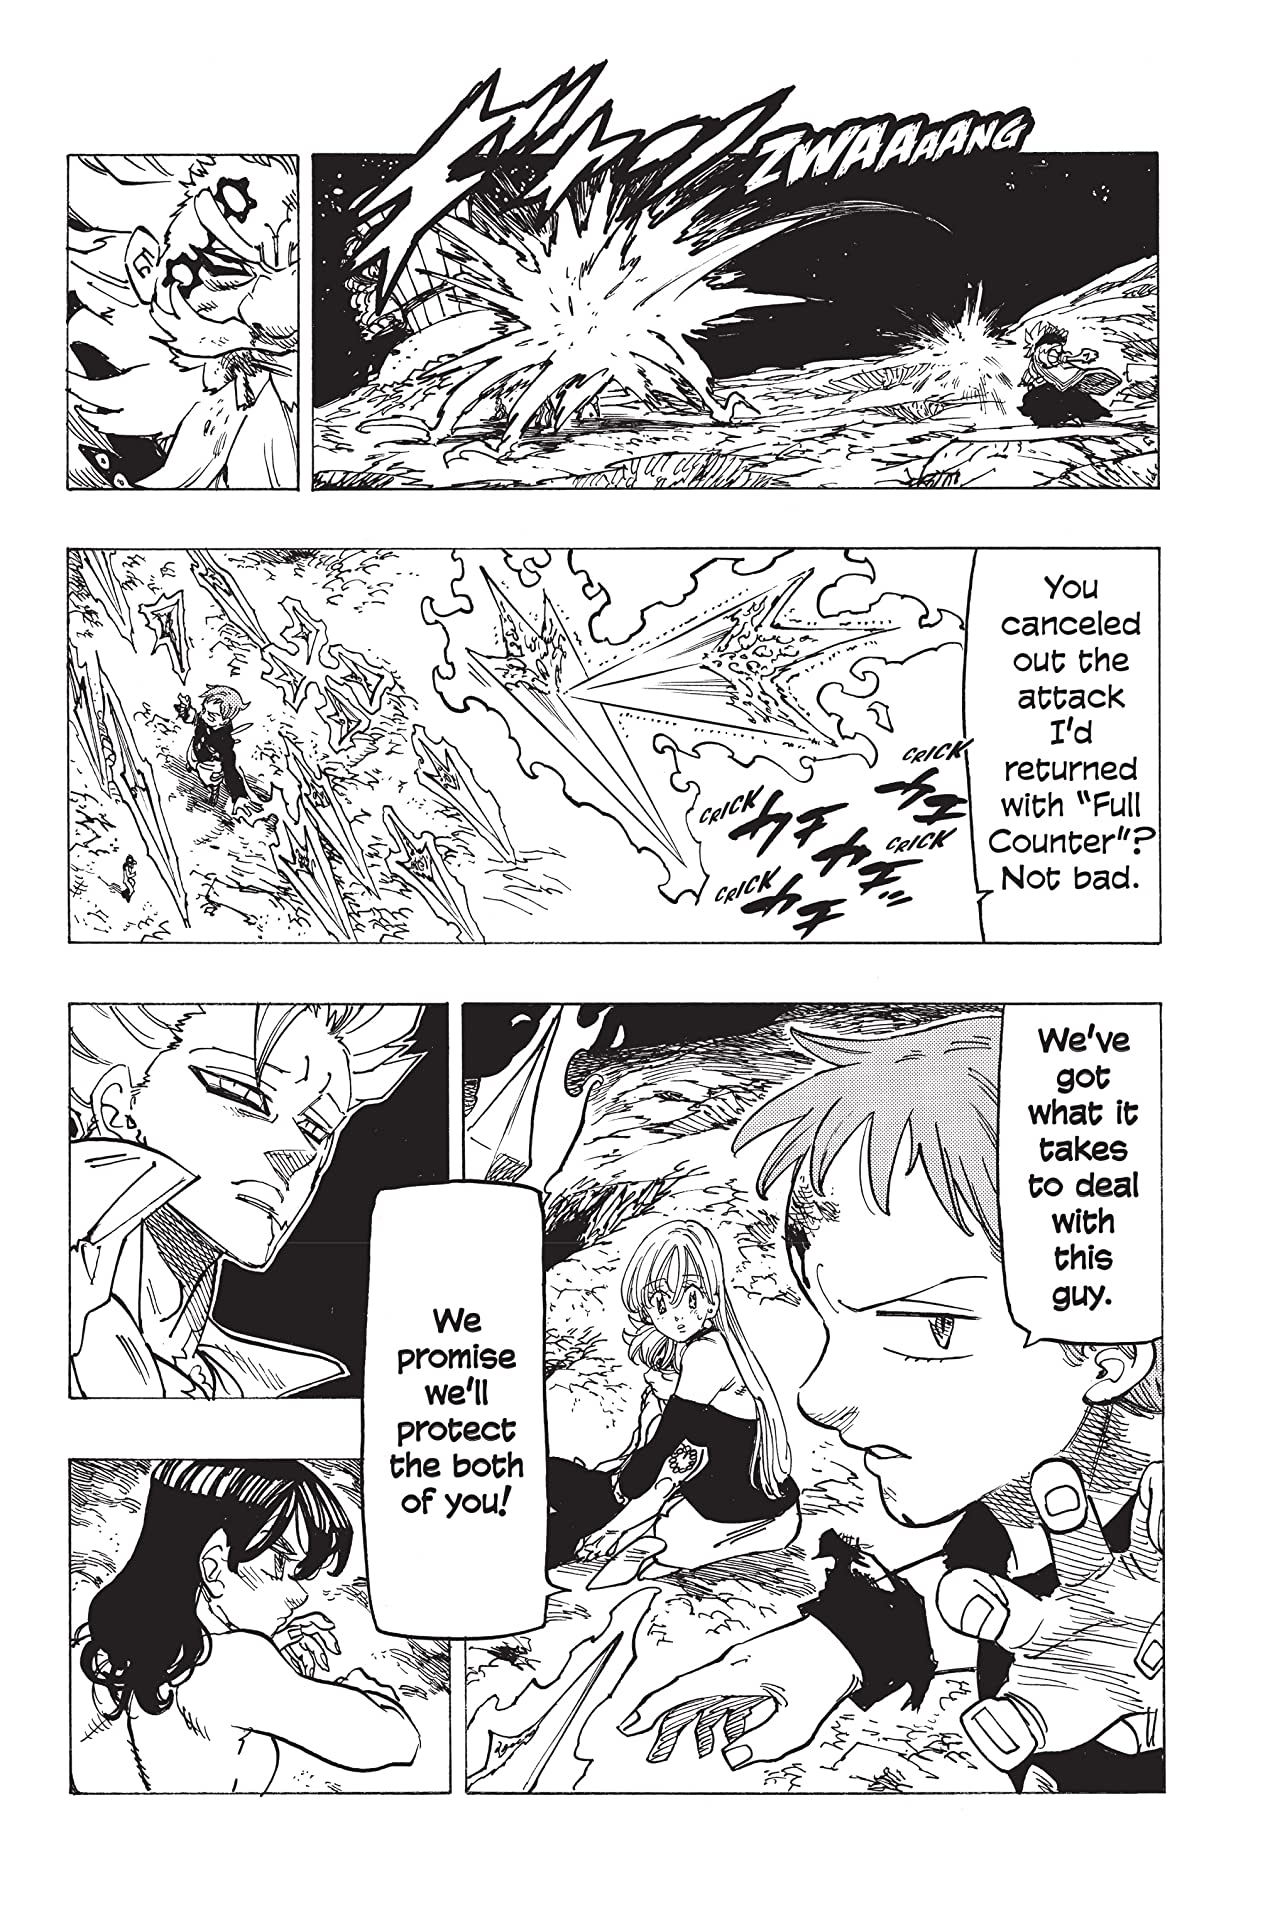 The Seven Deadly Sins #239